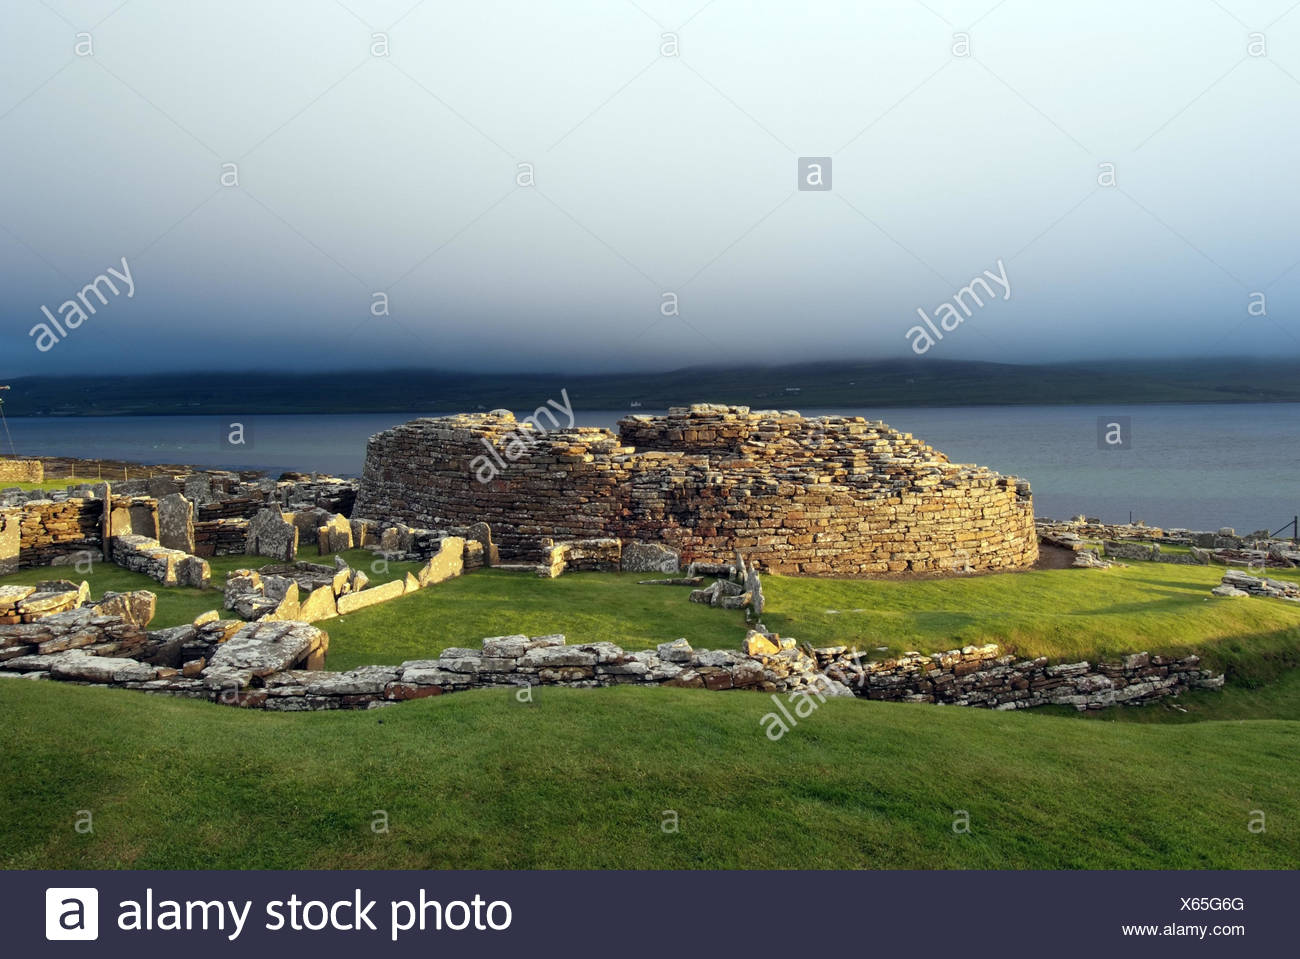 Great Britain, Scotland, Orkneyinseln, island Main country, Broch Gurness, stone circle, ruin, prehistorically, settlement, Orkney, scenery, hill, stone, historically, Pikten, peninsula, Aikerness, place of interest, culture, megalithic culture, remains, outside, deserted, view, - Stock Image